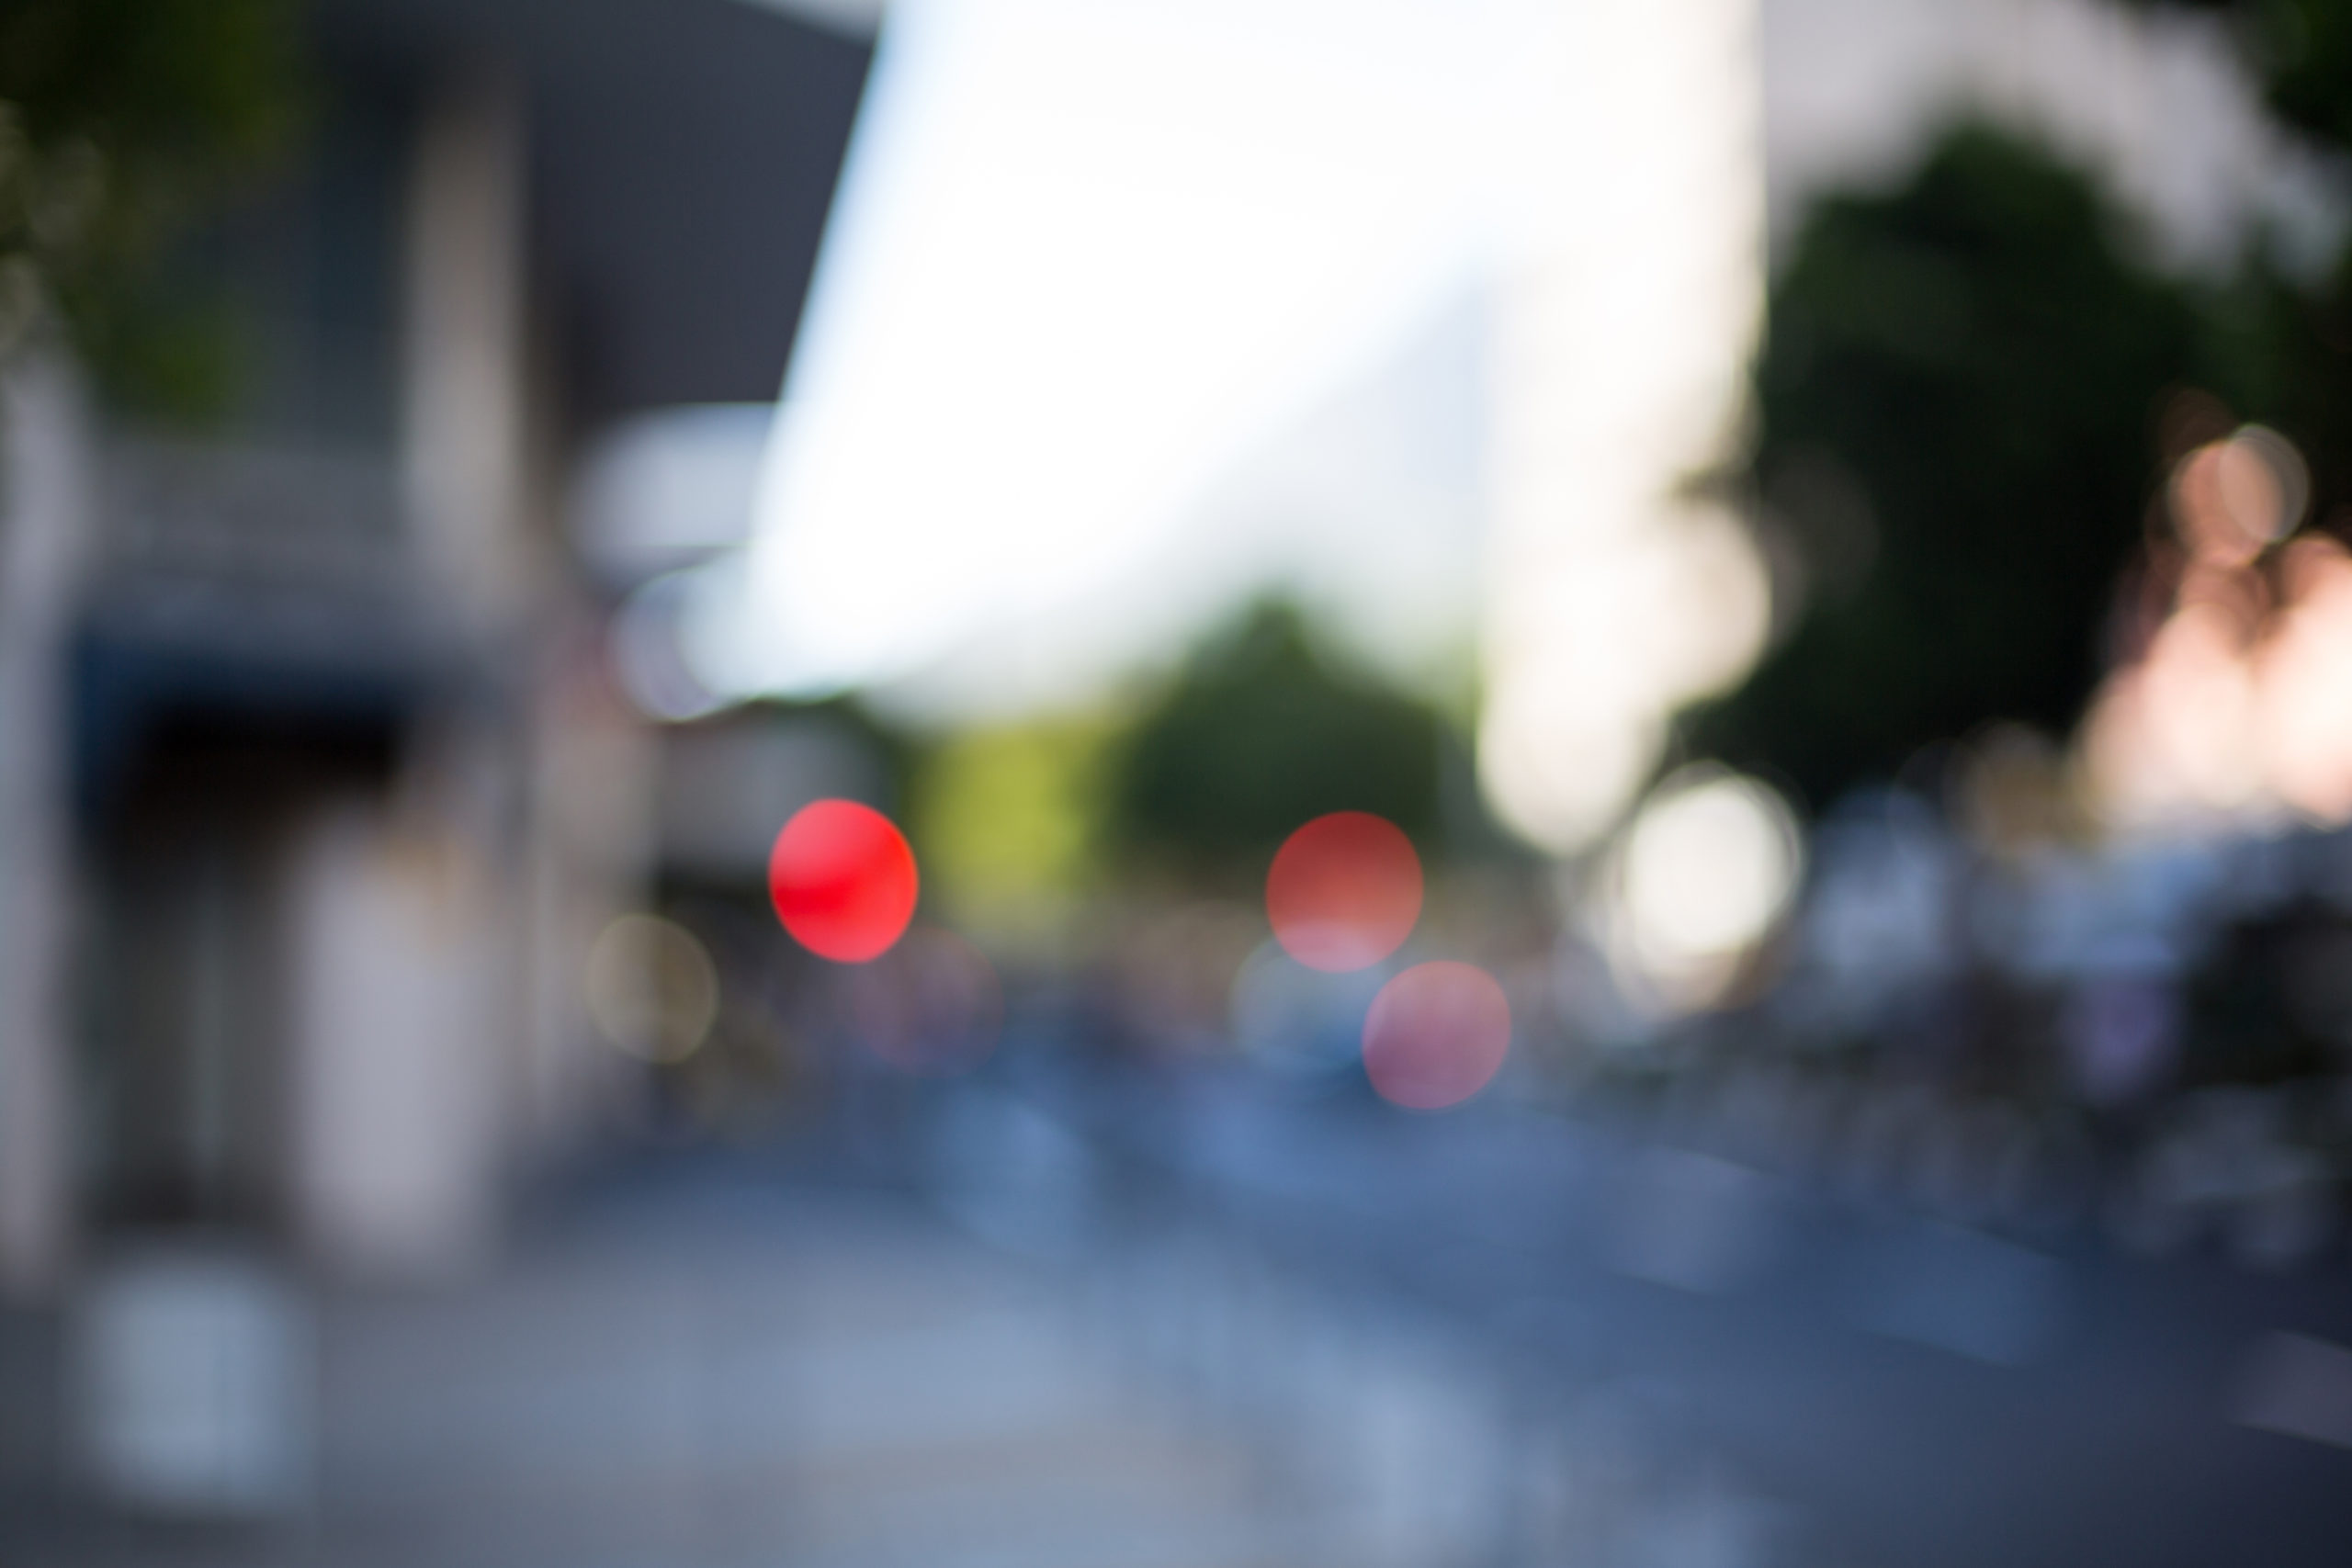 a blurry urban street scene PUC996P scaled - What Causes Blurred Vision and How To Deal With It